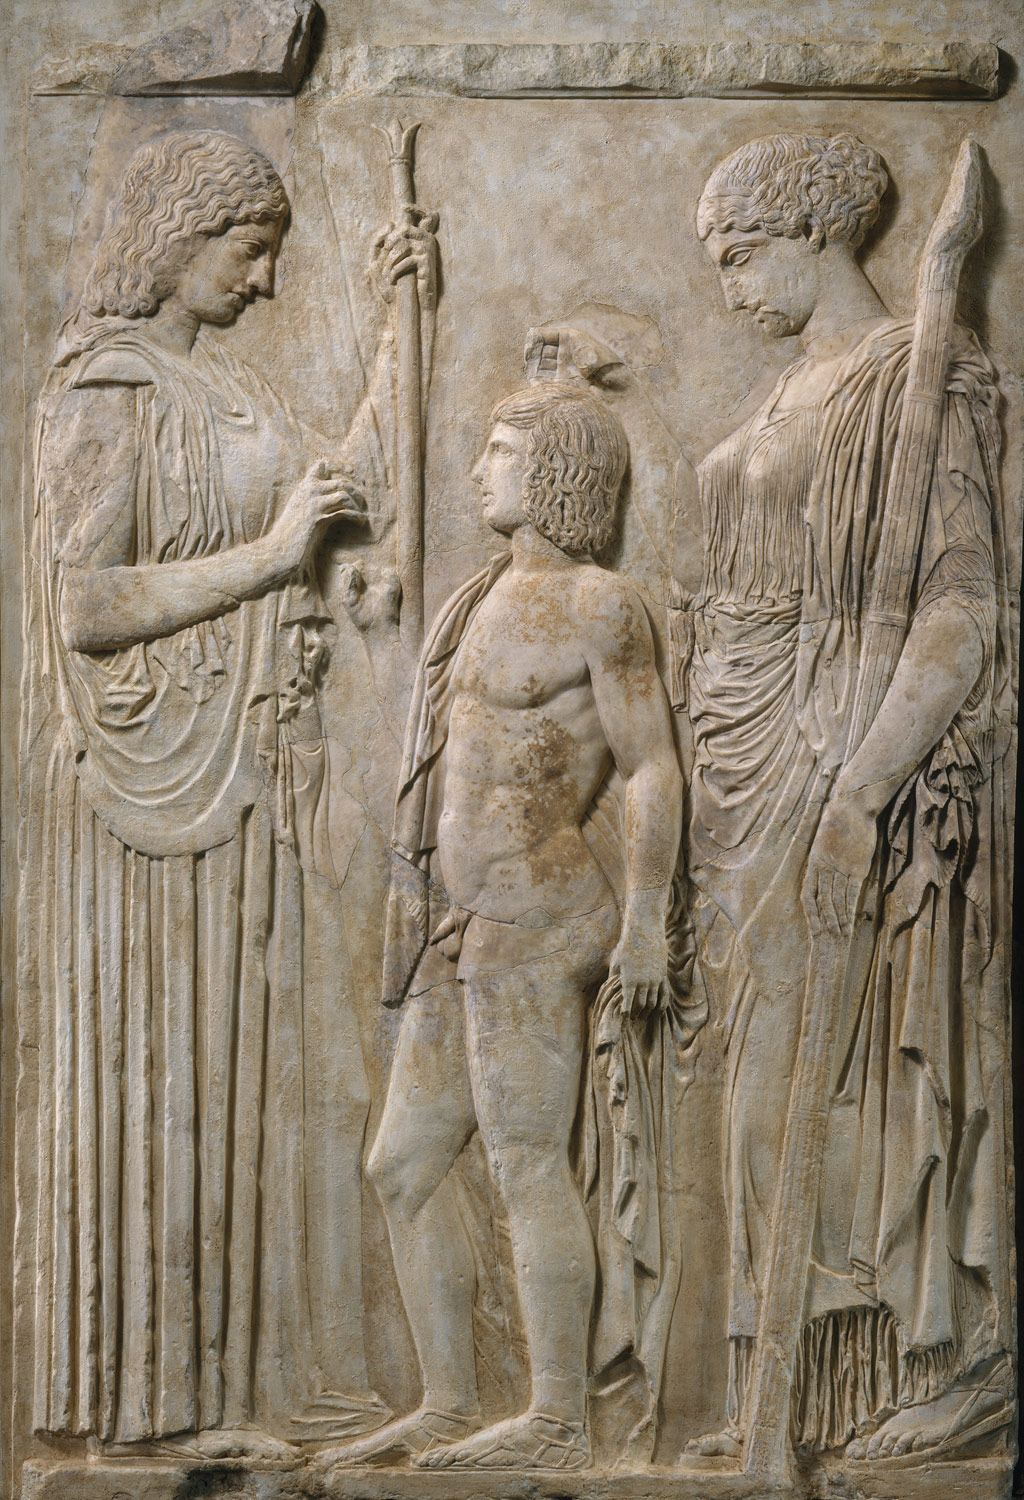 Fragment from the Eleusinian Relief